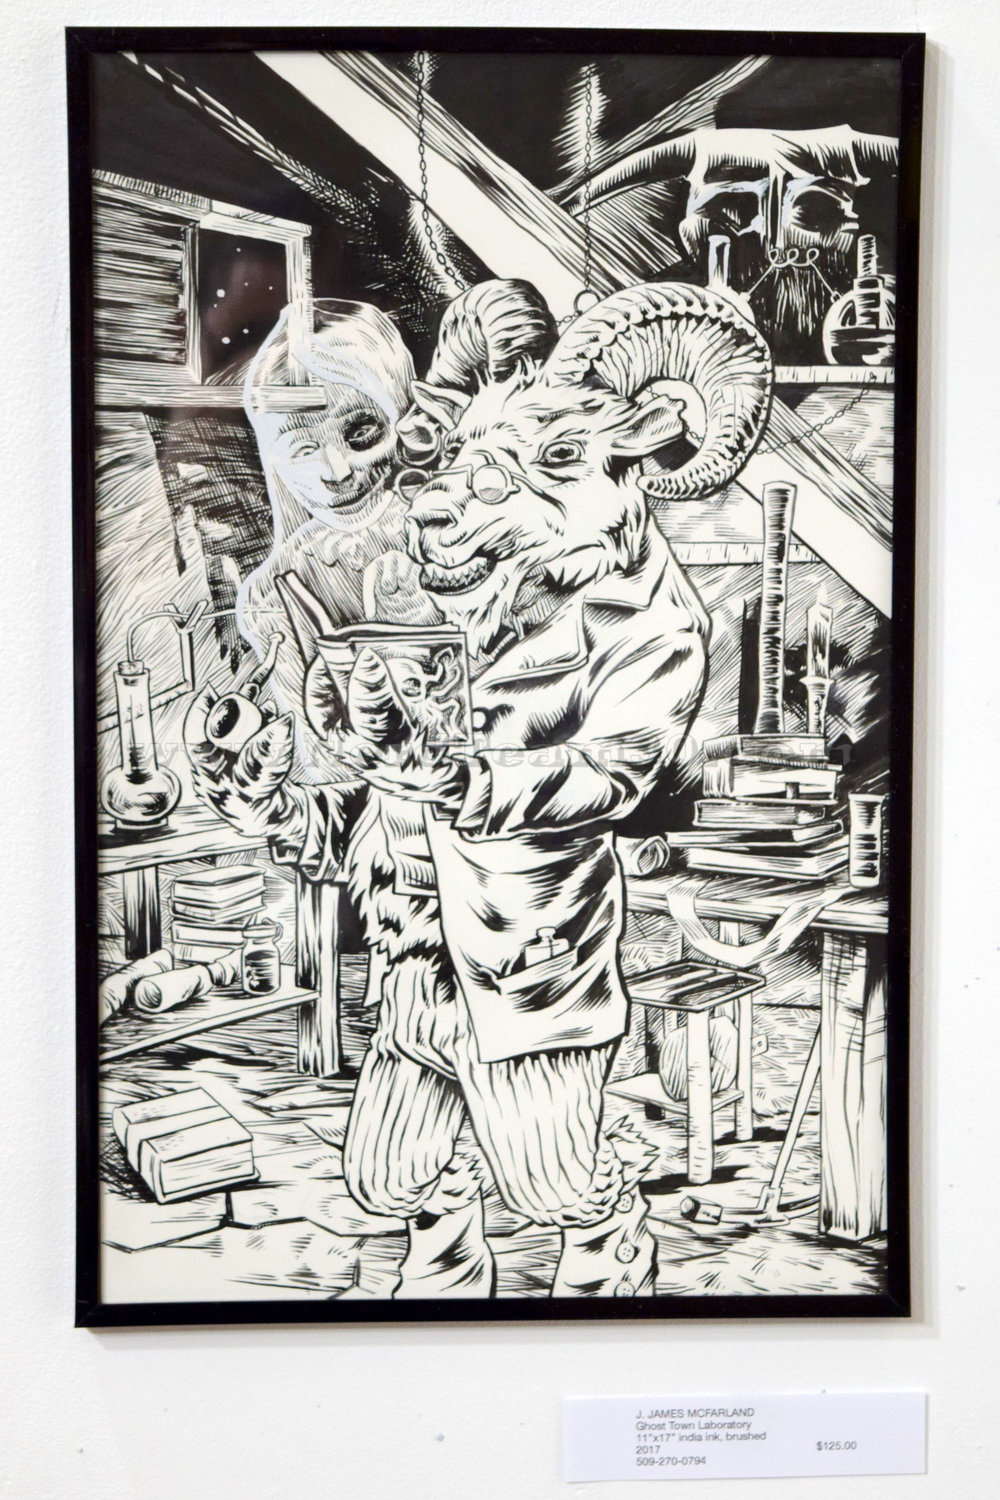 """J. James McFarland """"Ghost Town Laboratory"""" 11"""" x 17"""" india ink, brushed 2017   $125"""